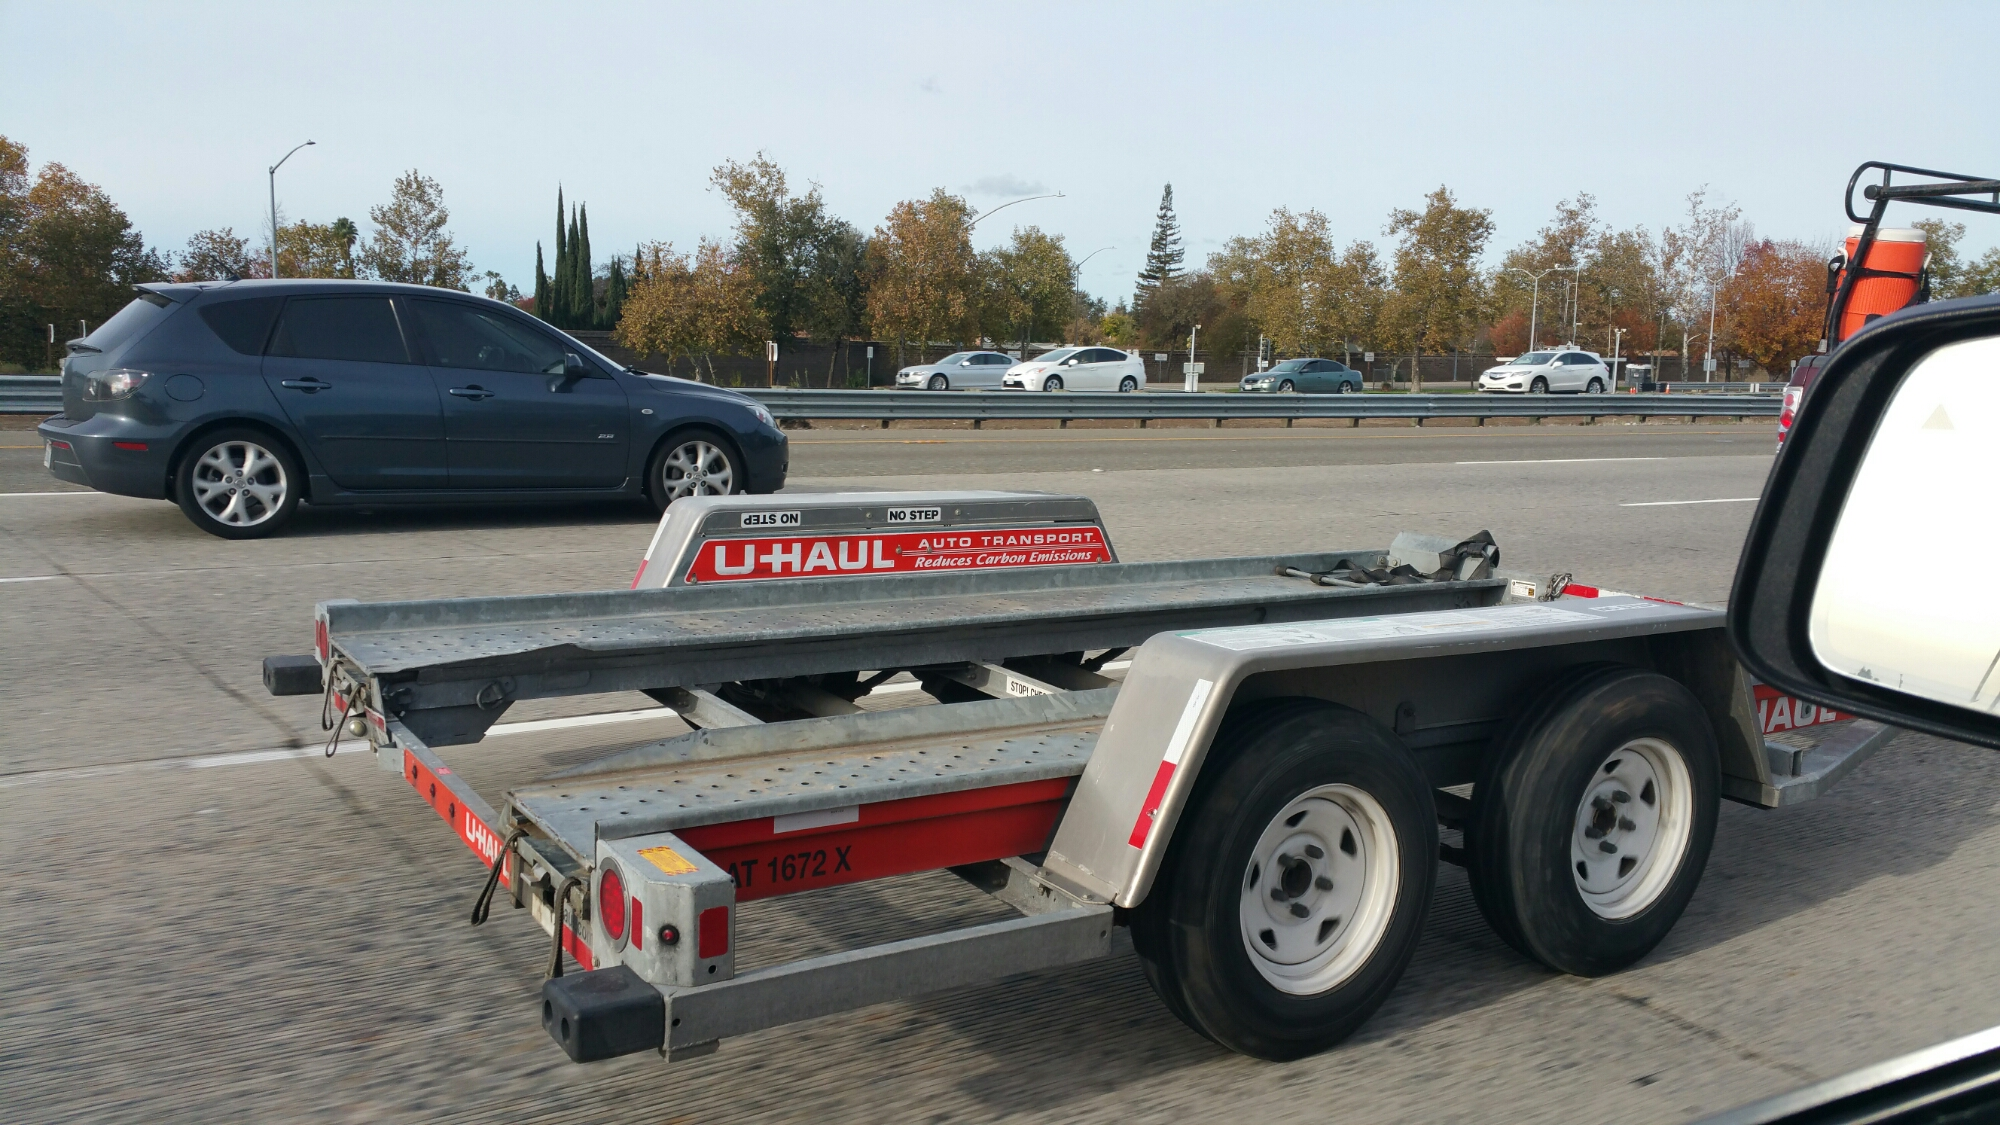 How To Attach Trailer To Rental Car